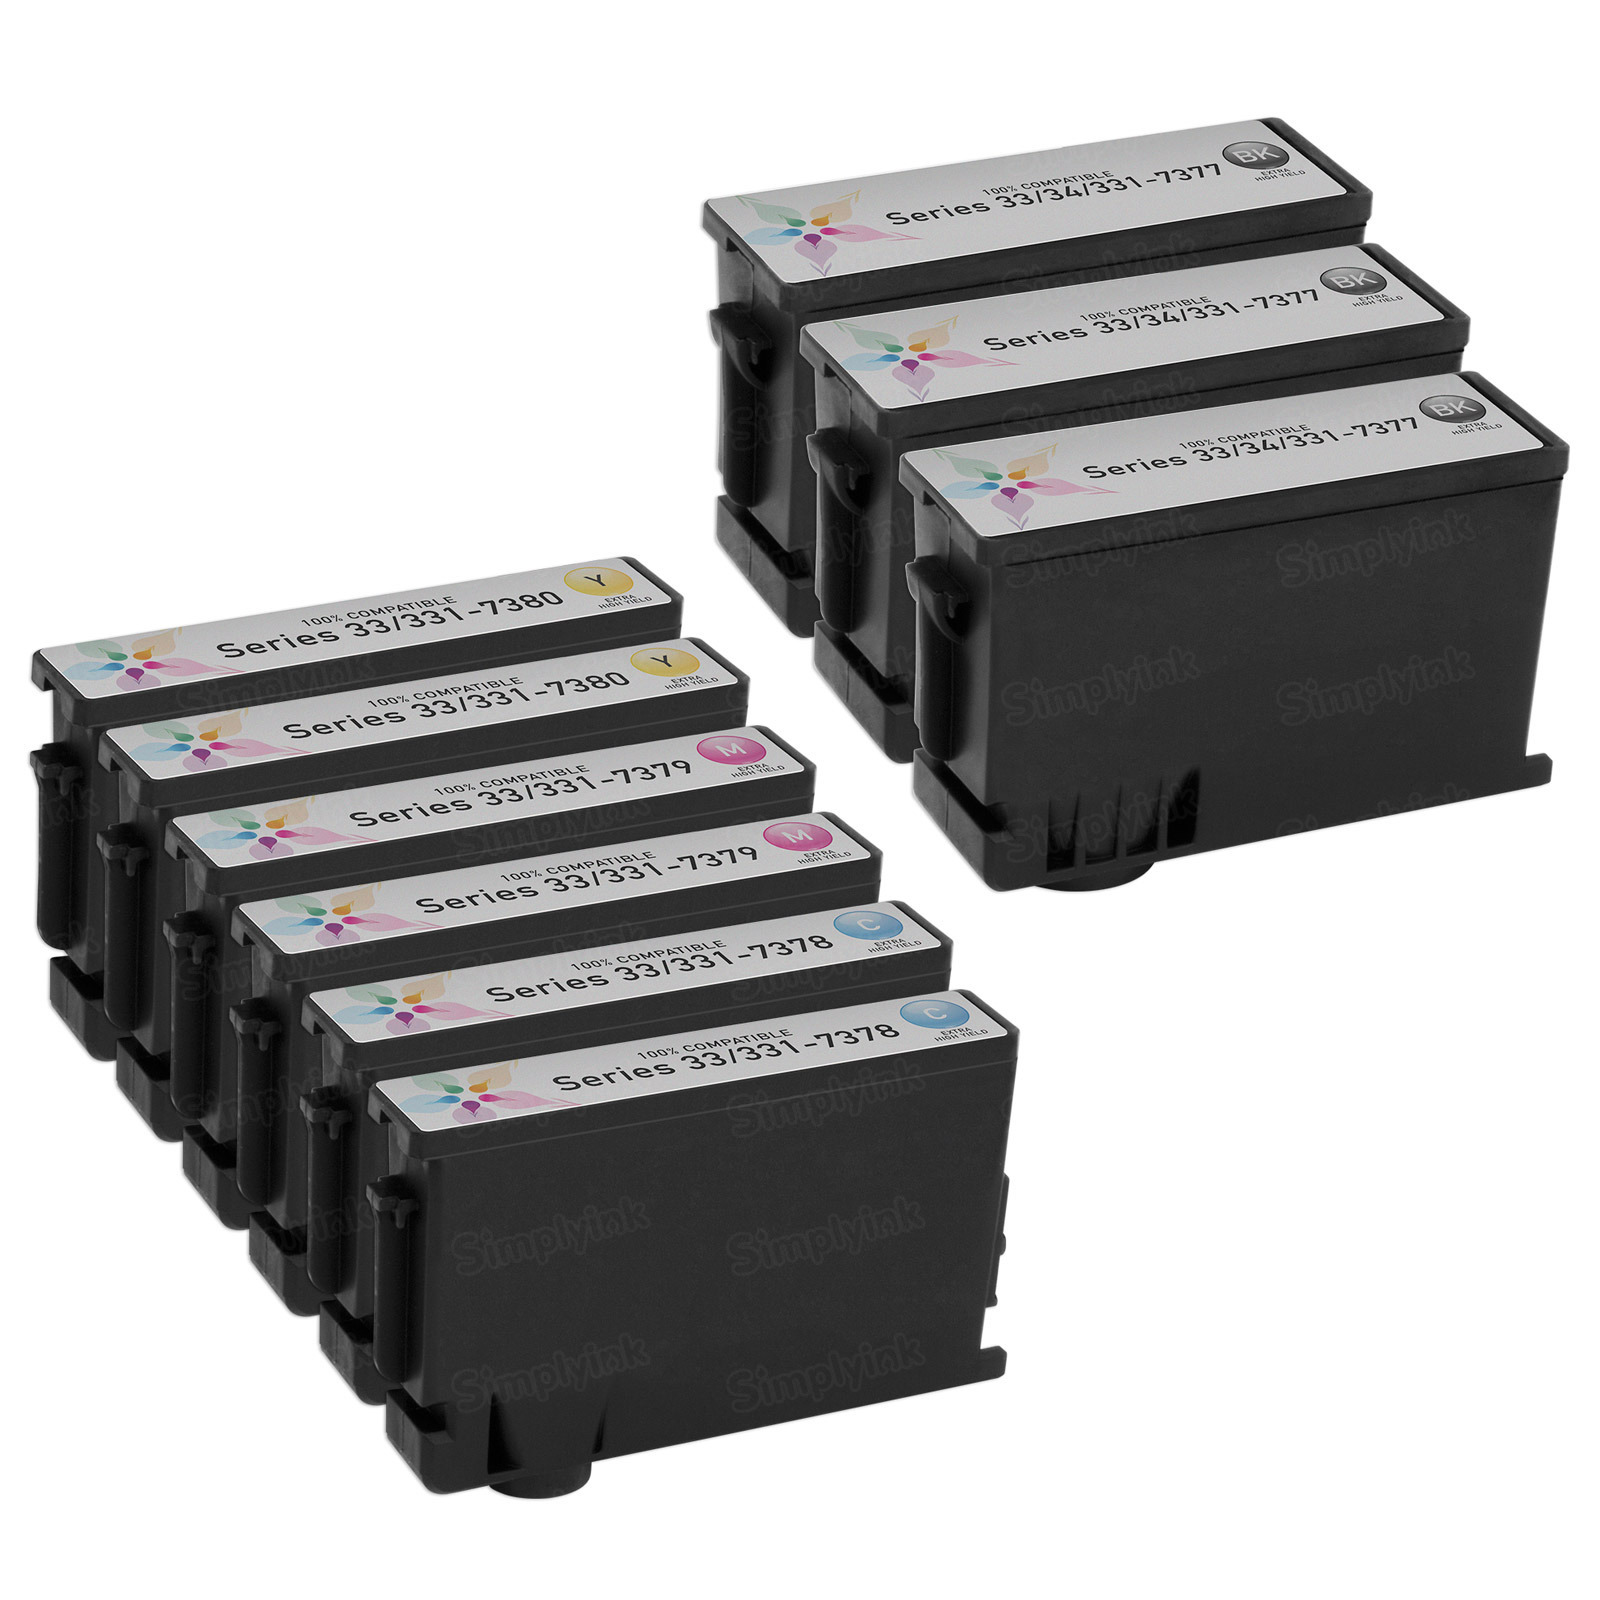 9-Pack of Compatible Replacement for Dell Series 33/34 Ink